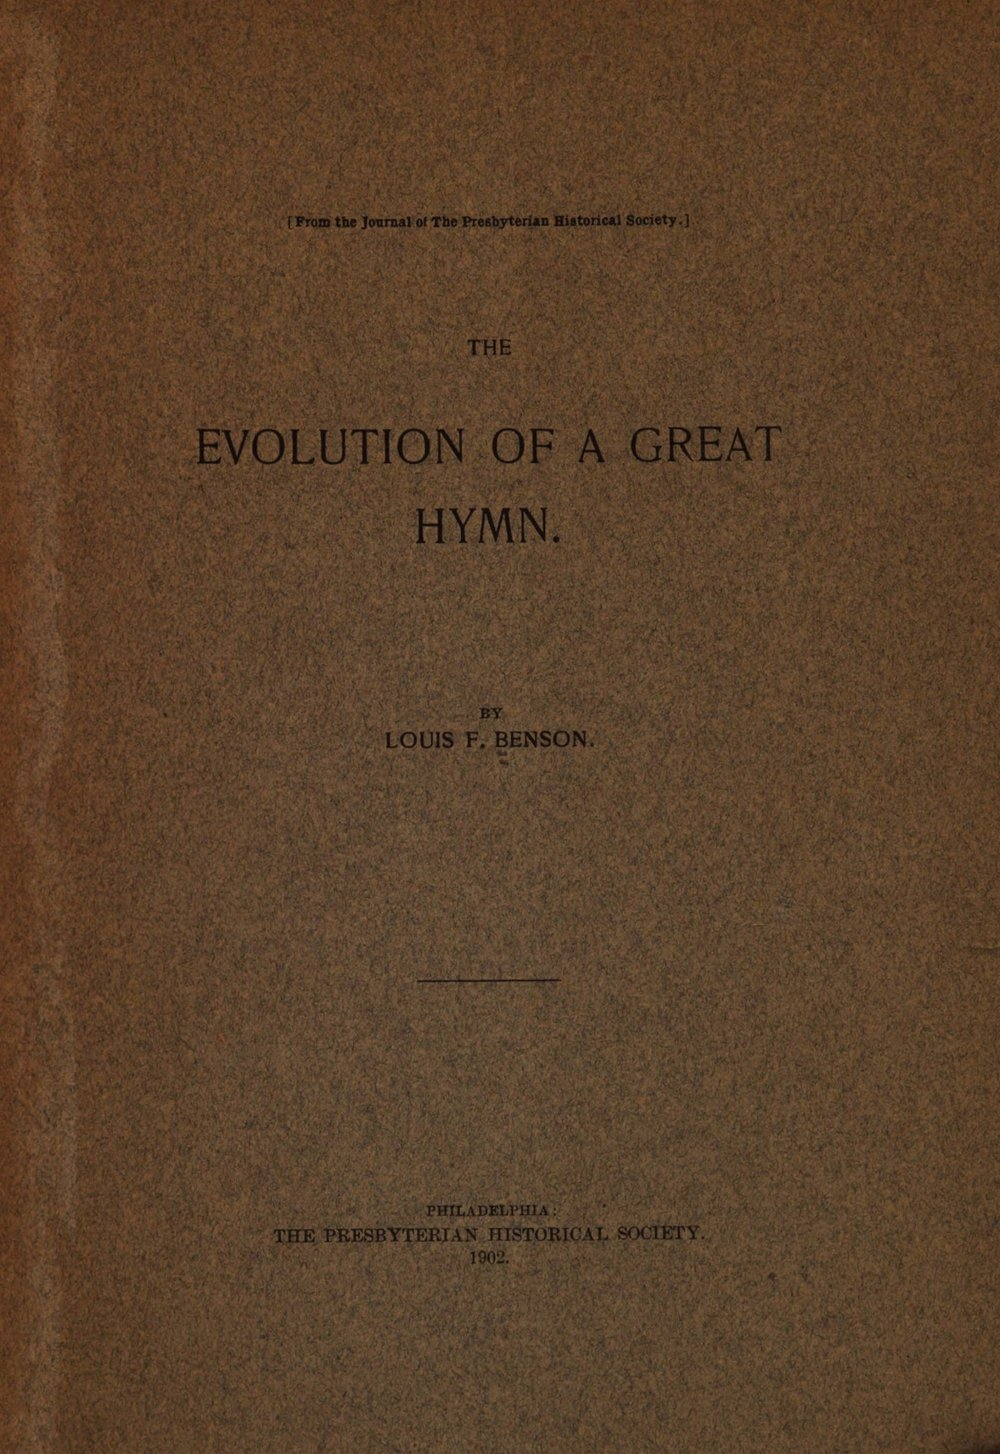 Benson, Louis FitzGerald, The Evolution of a Great Hymn Title Page.jpg